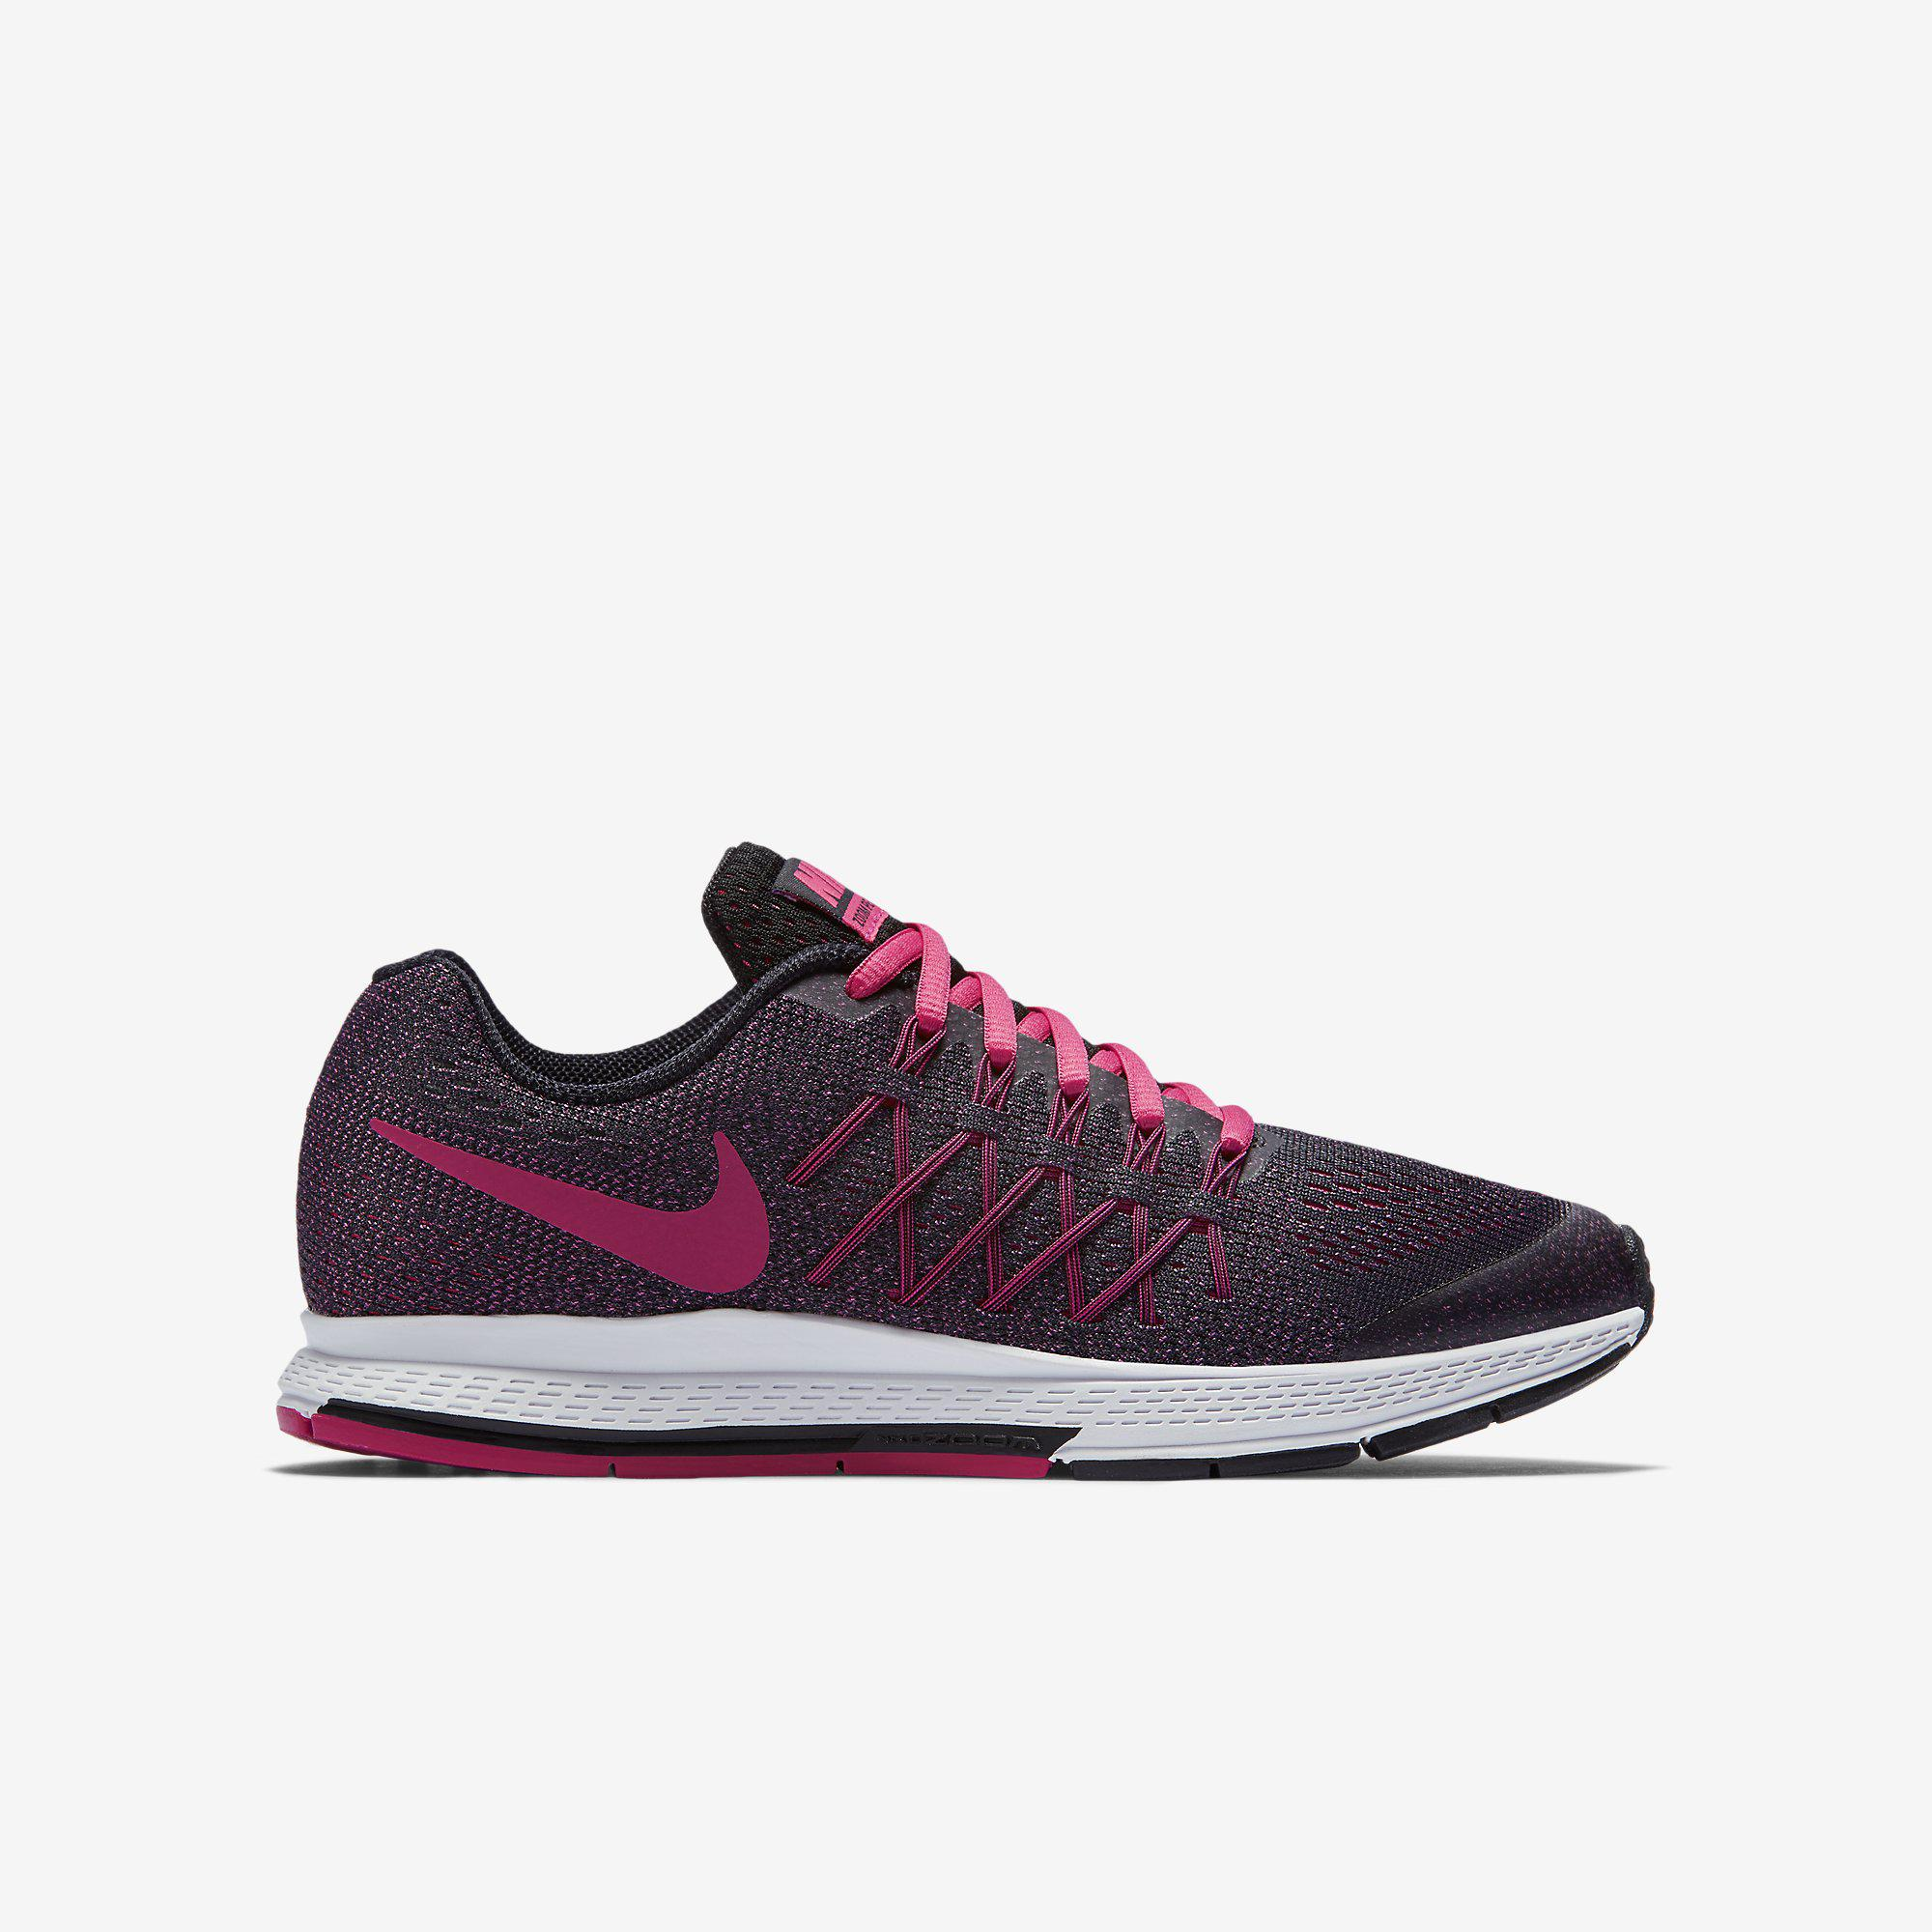 nike girls air zoom pegasus 32 running shoes vivid pink black white. Black Bedroom Furniture Sets. Home Design Ideas